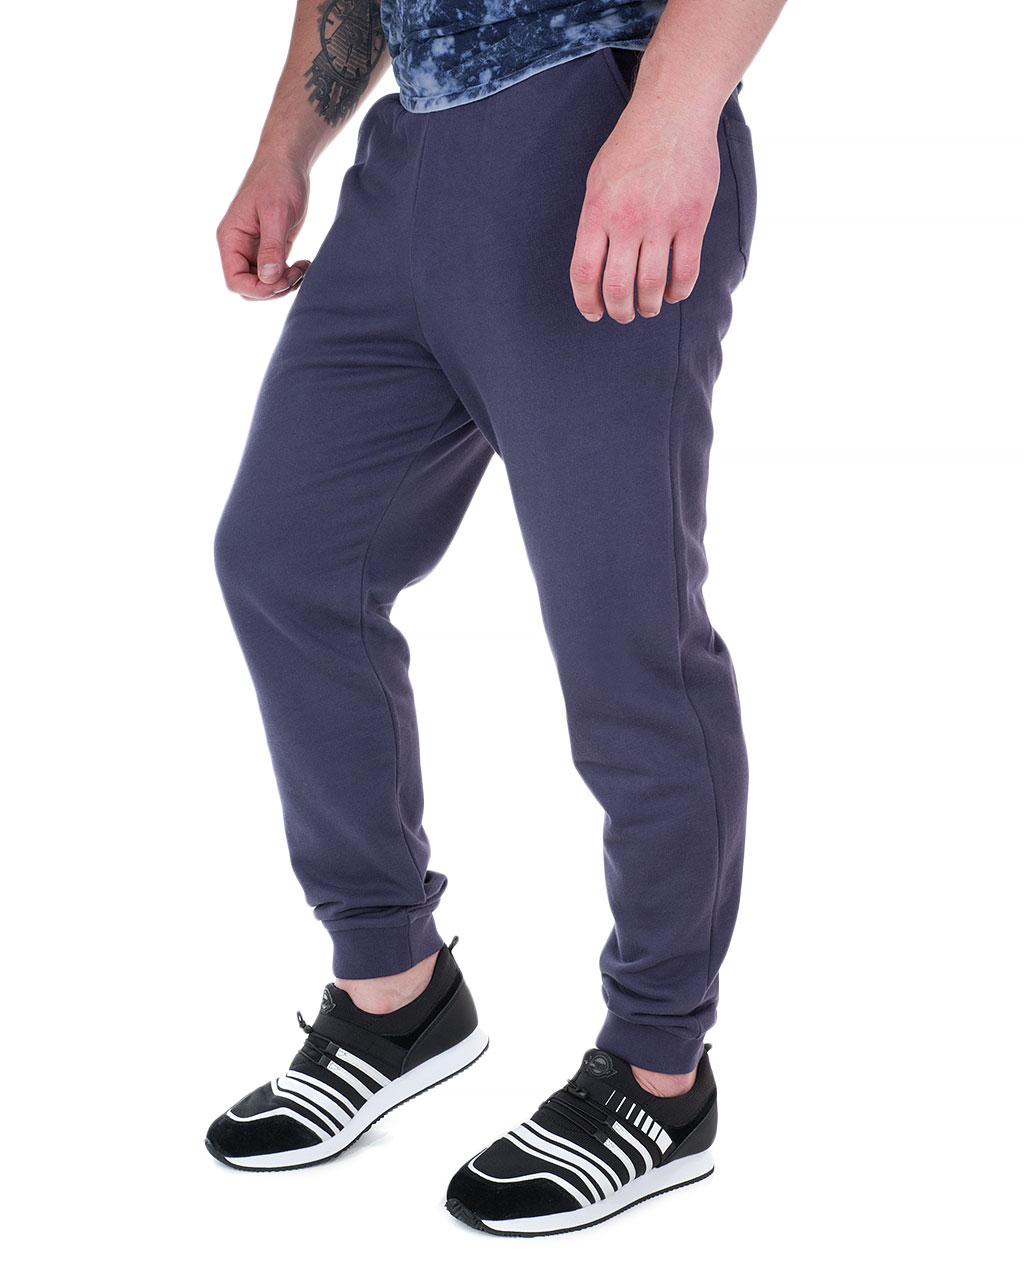 Men's trousers 52P00094-1T002297-U290/9 (2)